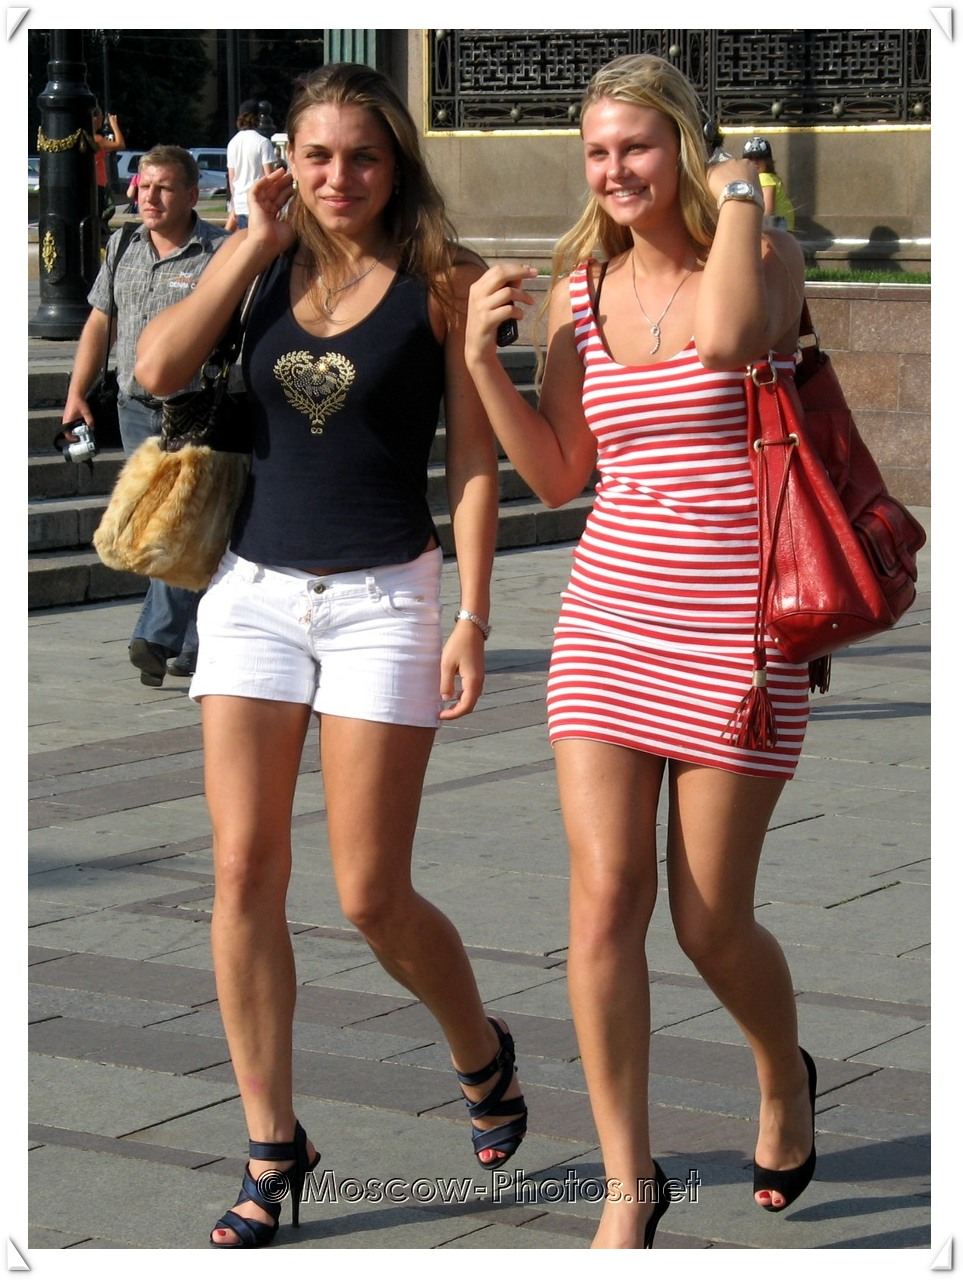 Smiling Moscow Girls and Hot Summer